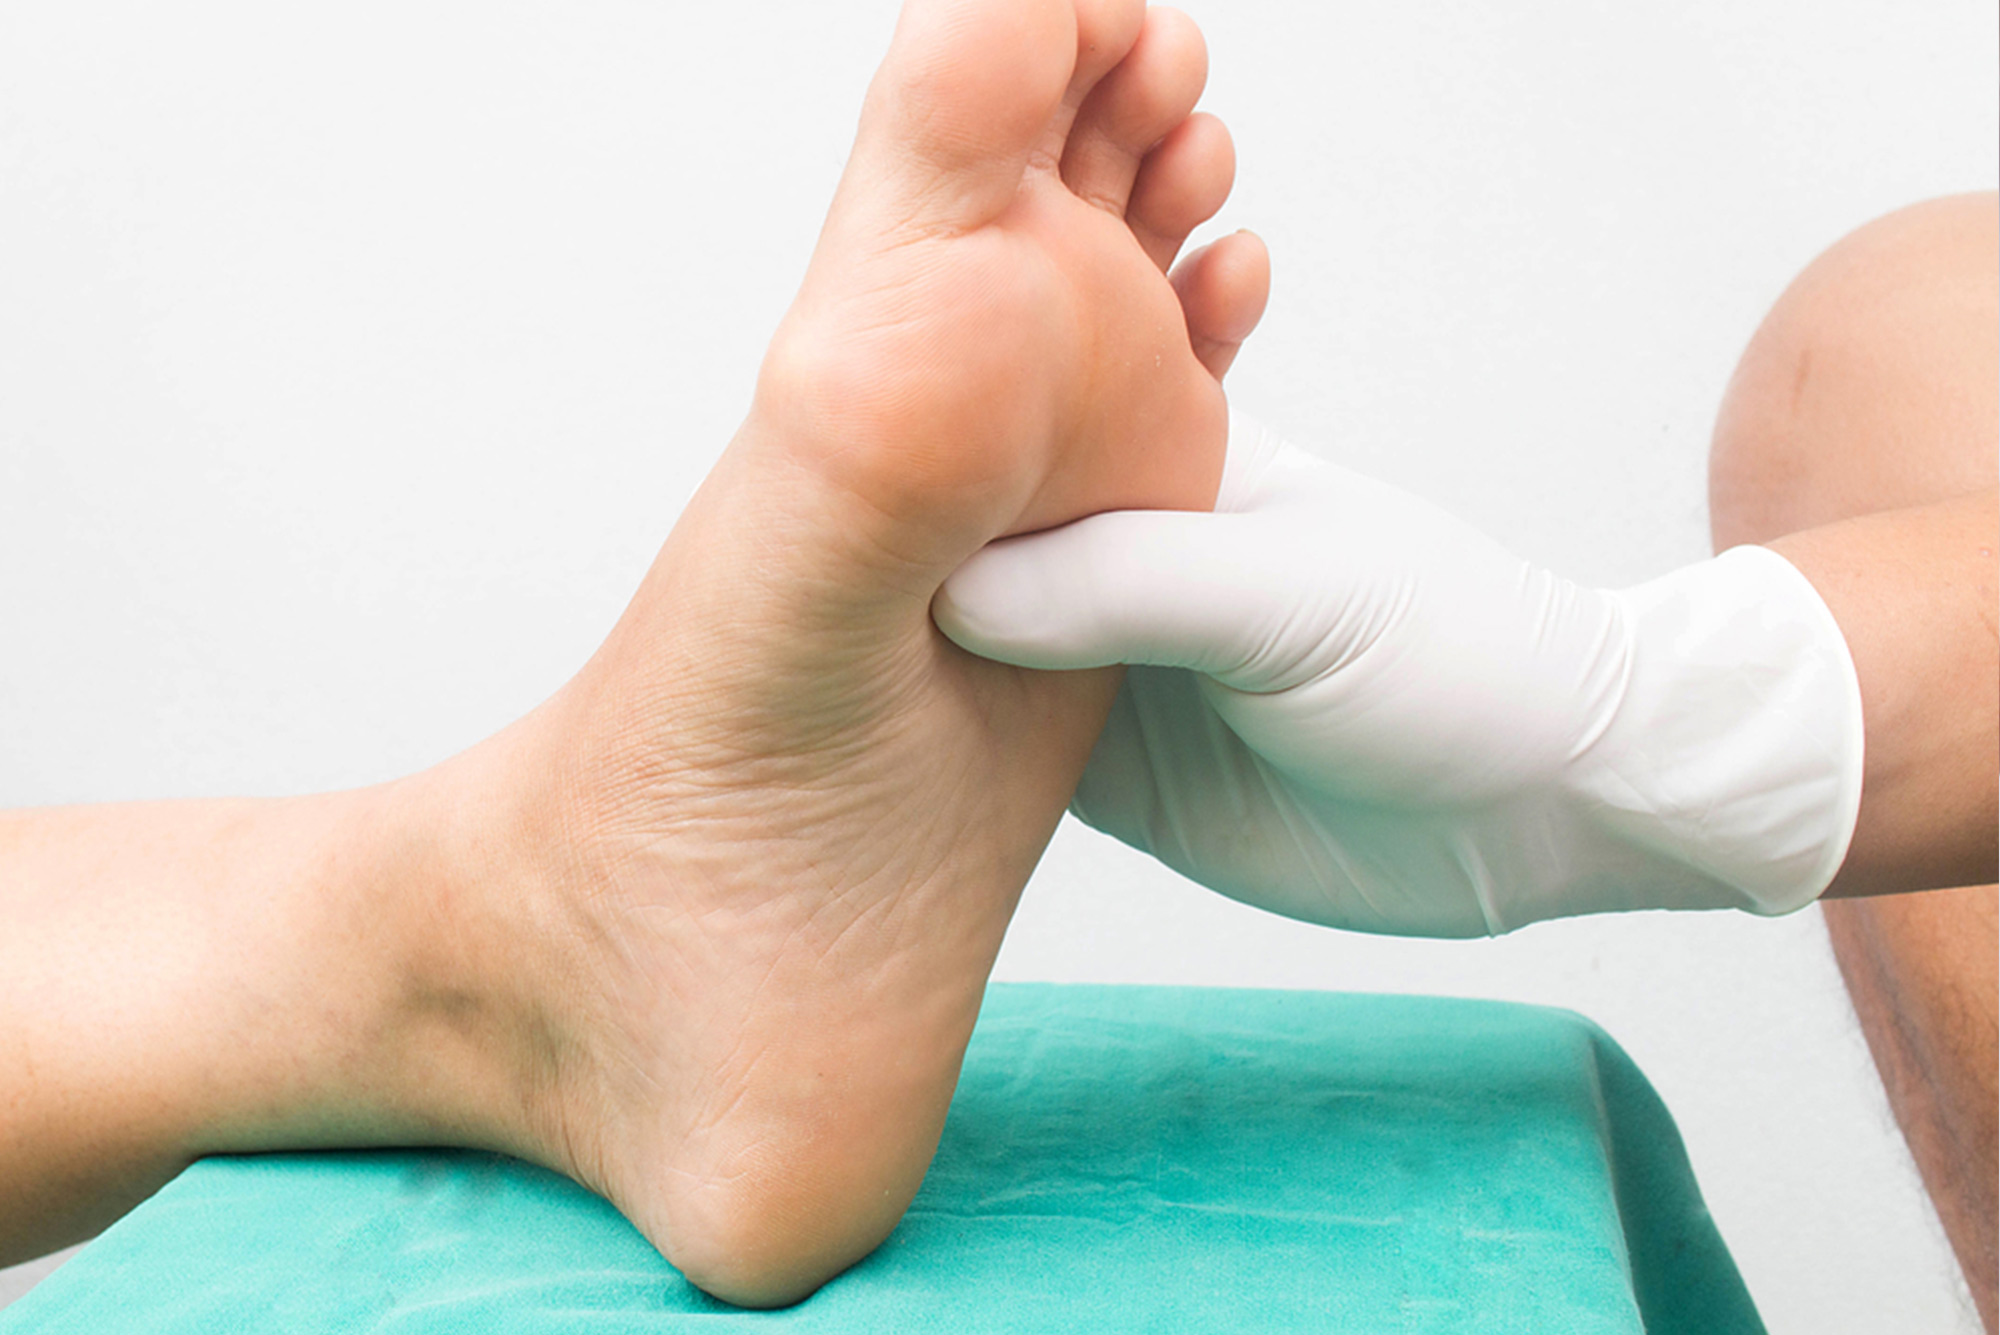 http://dubaipodiatry.com/wp-content/uploads/2017/01/diabetic_feet.jpg